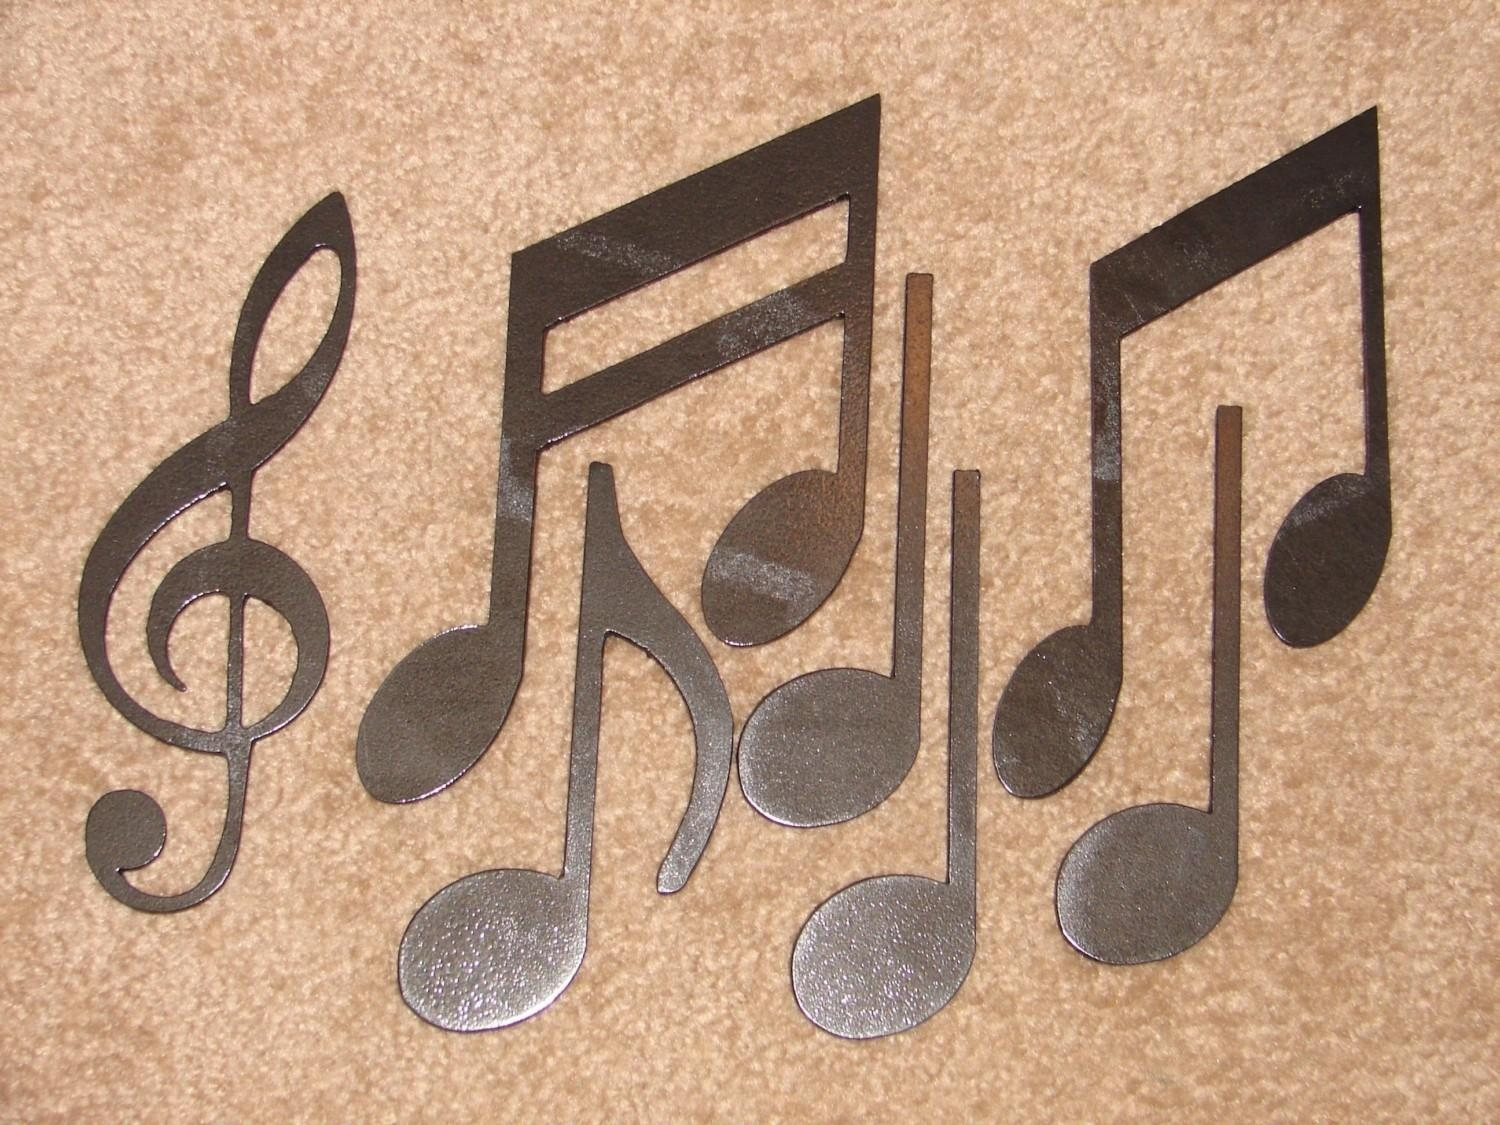 Metal Wall Art Decor Music Notes Musical Note Patio Throughout Music Note Wall Art Decor (Image 6 of 20)